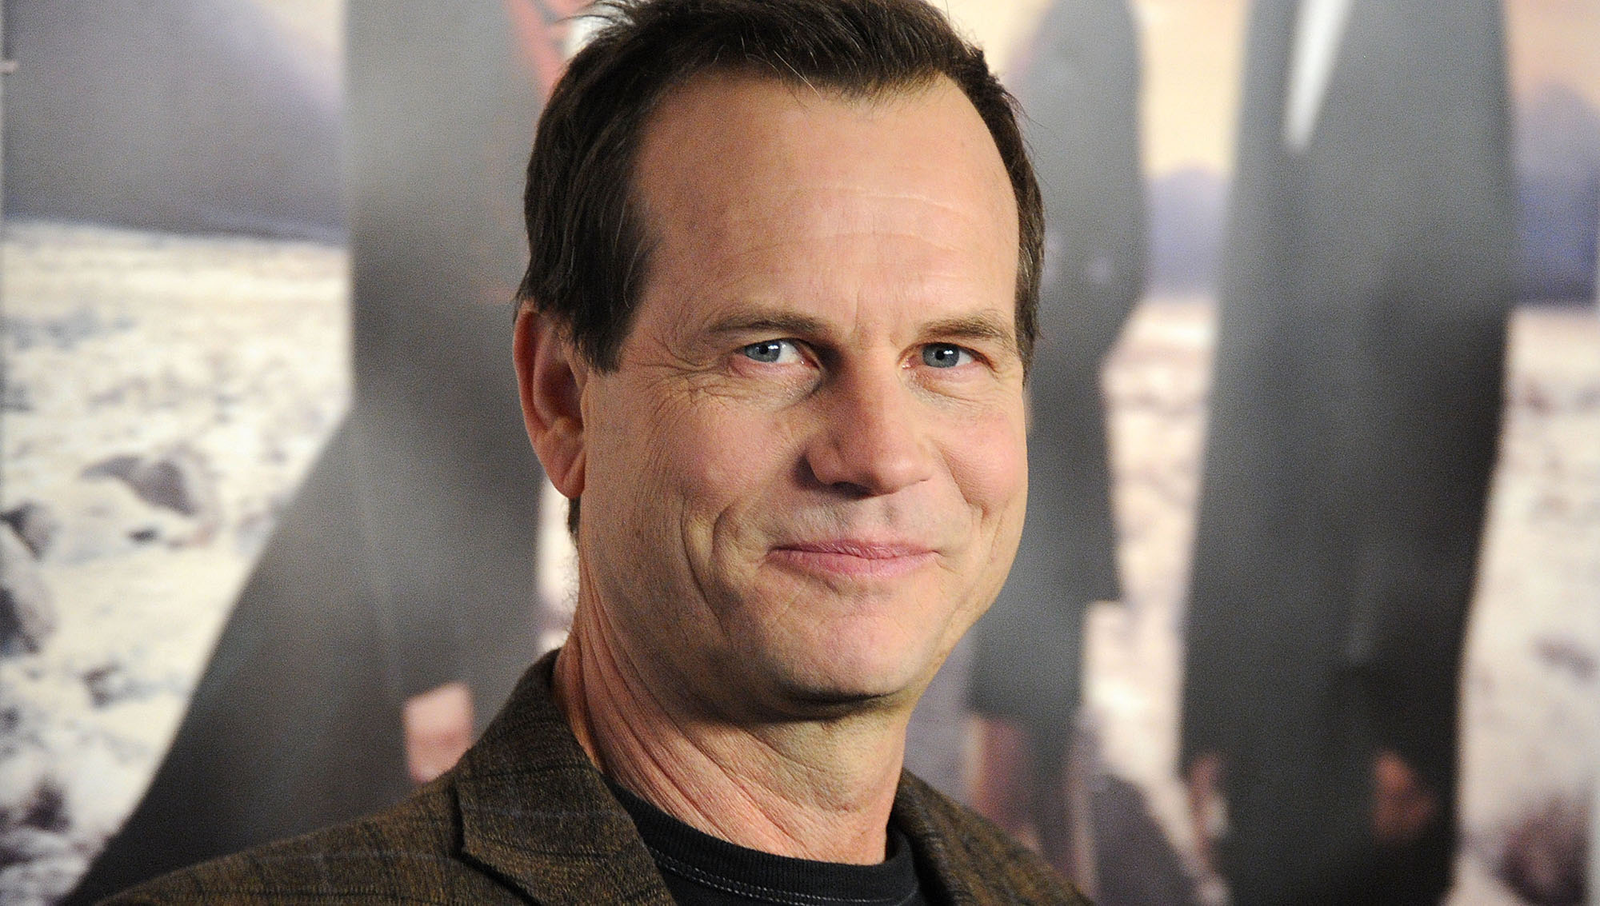 Bill Paxton: The beloved character actor made his mark on audiences with a small but unforgettable supporting role at his own funeral